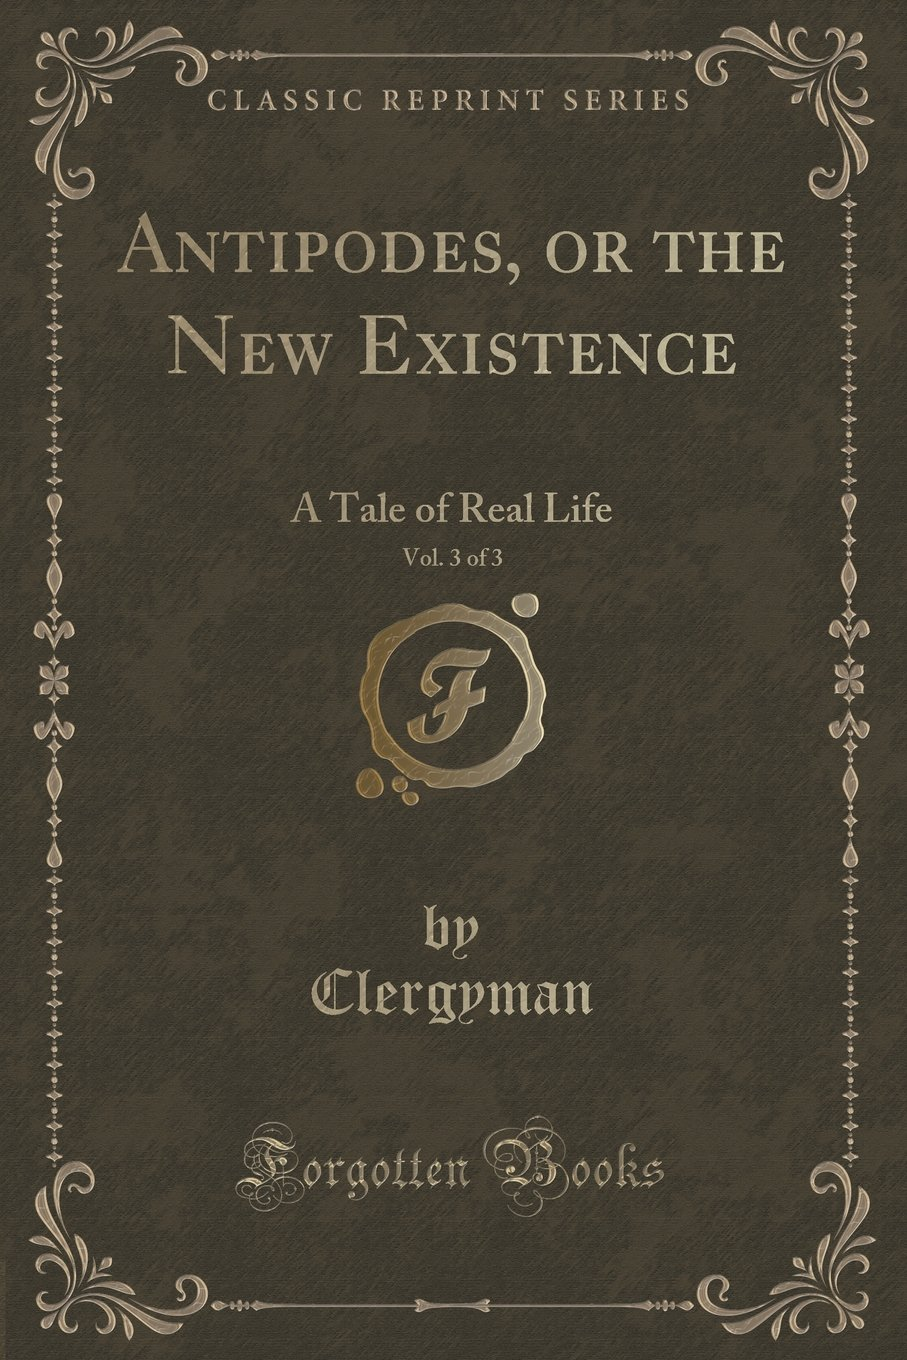 Antipodes, or the New Existence, Vol. 3 of 3: A Tale of Real Life (Classic Reprint) PDF